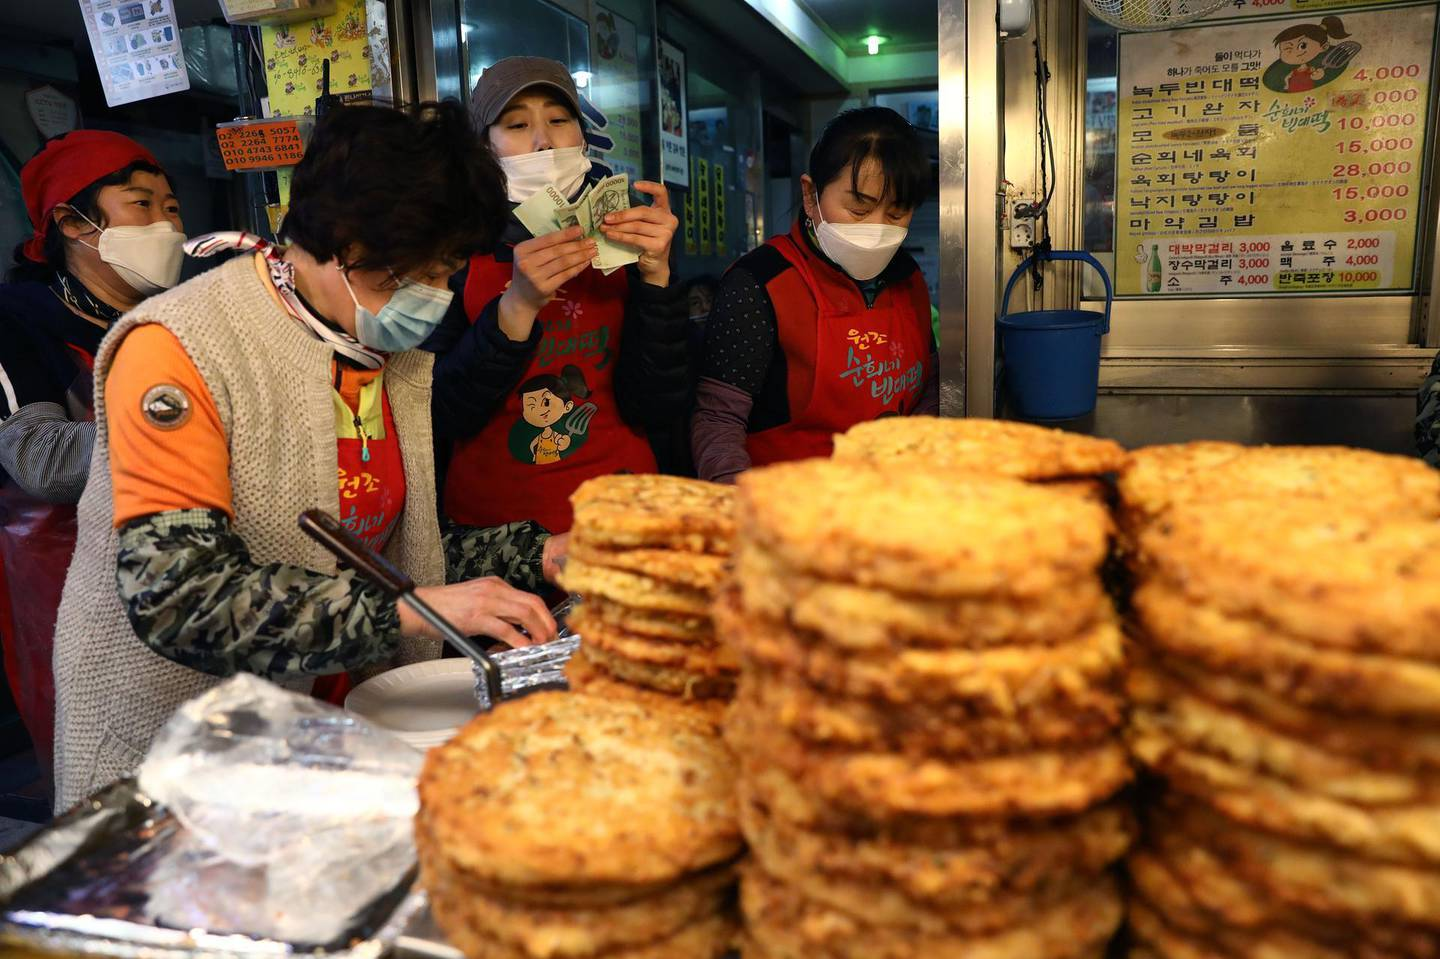 SEOUL, SOUTH KOREA - APRIL 12: Shopkeepers wear masks as they wait for a customer during a Easter holiday Kwangjang market during a Easter as South Koreans take measures to protect themselves against the spread of coronavirus (COVID-19) on April 12, 2020 in Seoul, South Korea. South Korea has called for expanded public participation in social distancing, as the country witnesses a wave of community spread and imported infections leading to a resurgence in new cases of COVID-19. South Korea's coronavirus cases hovered around 30 for the third straight day Sunday, but health authorities are still staying vigilant over cluster infections, as well as new cases coming from overseas. According to the Korea Center for Disease Control and Prevention on Sunday, 32 new cases were reported. The total number of infections in the nation tallies at 10,512. (Photo by Chung Sung-Jun/Getty Images)